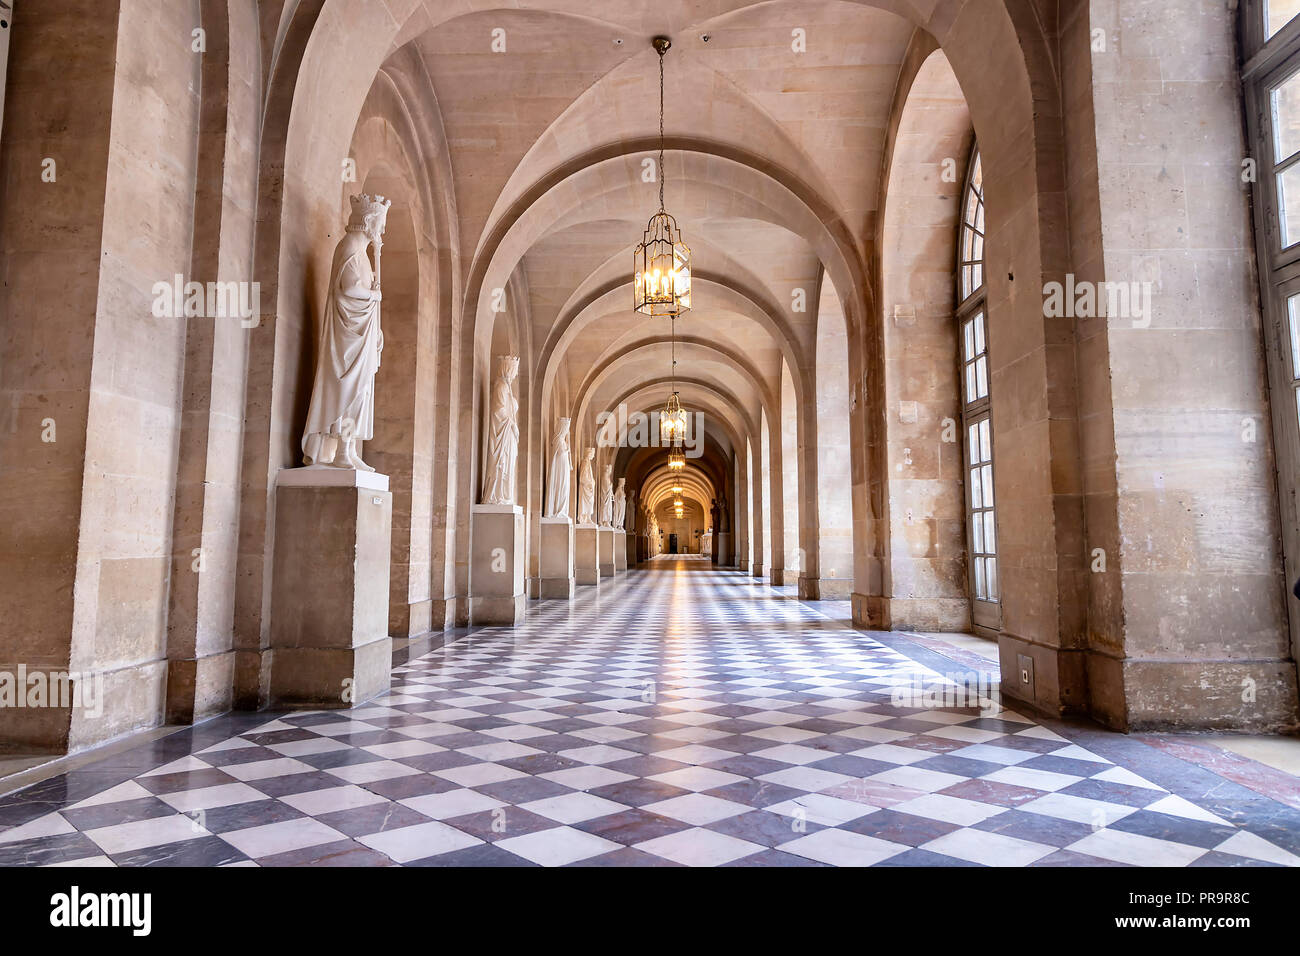 Versailles, France - March 14, 2018: An empty long corridor inside of the Royal Palace of Versailles in France Stock Photo